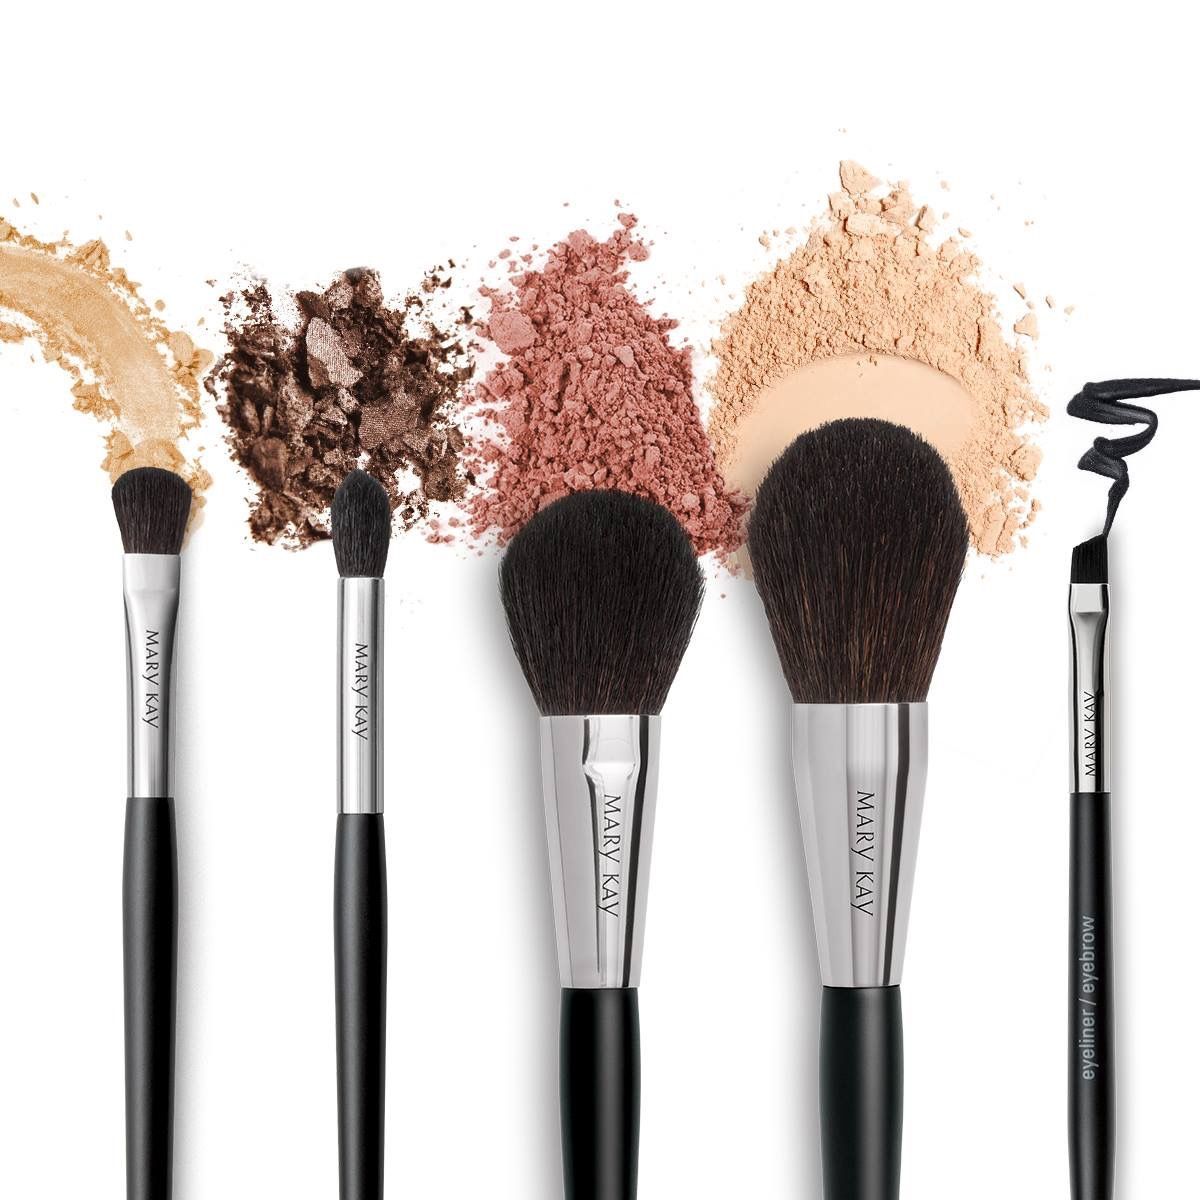 Beautiful brush collection by Mary Kay